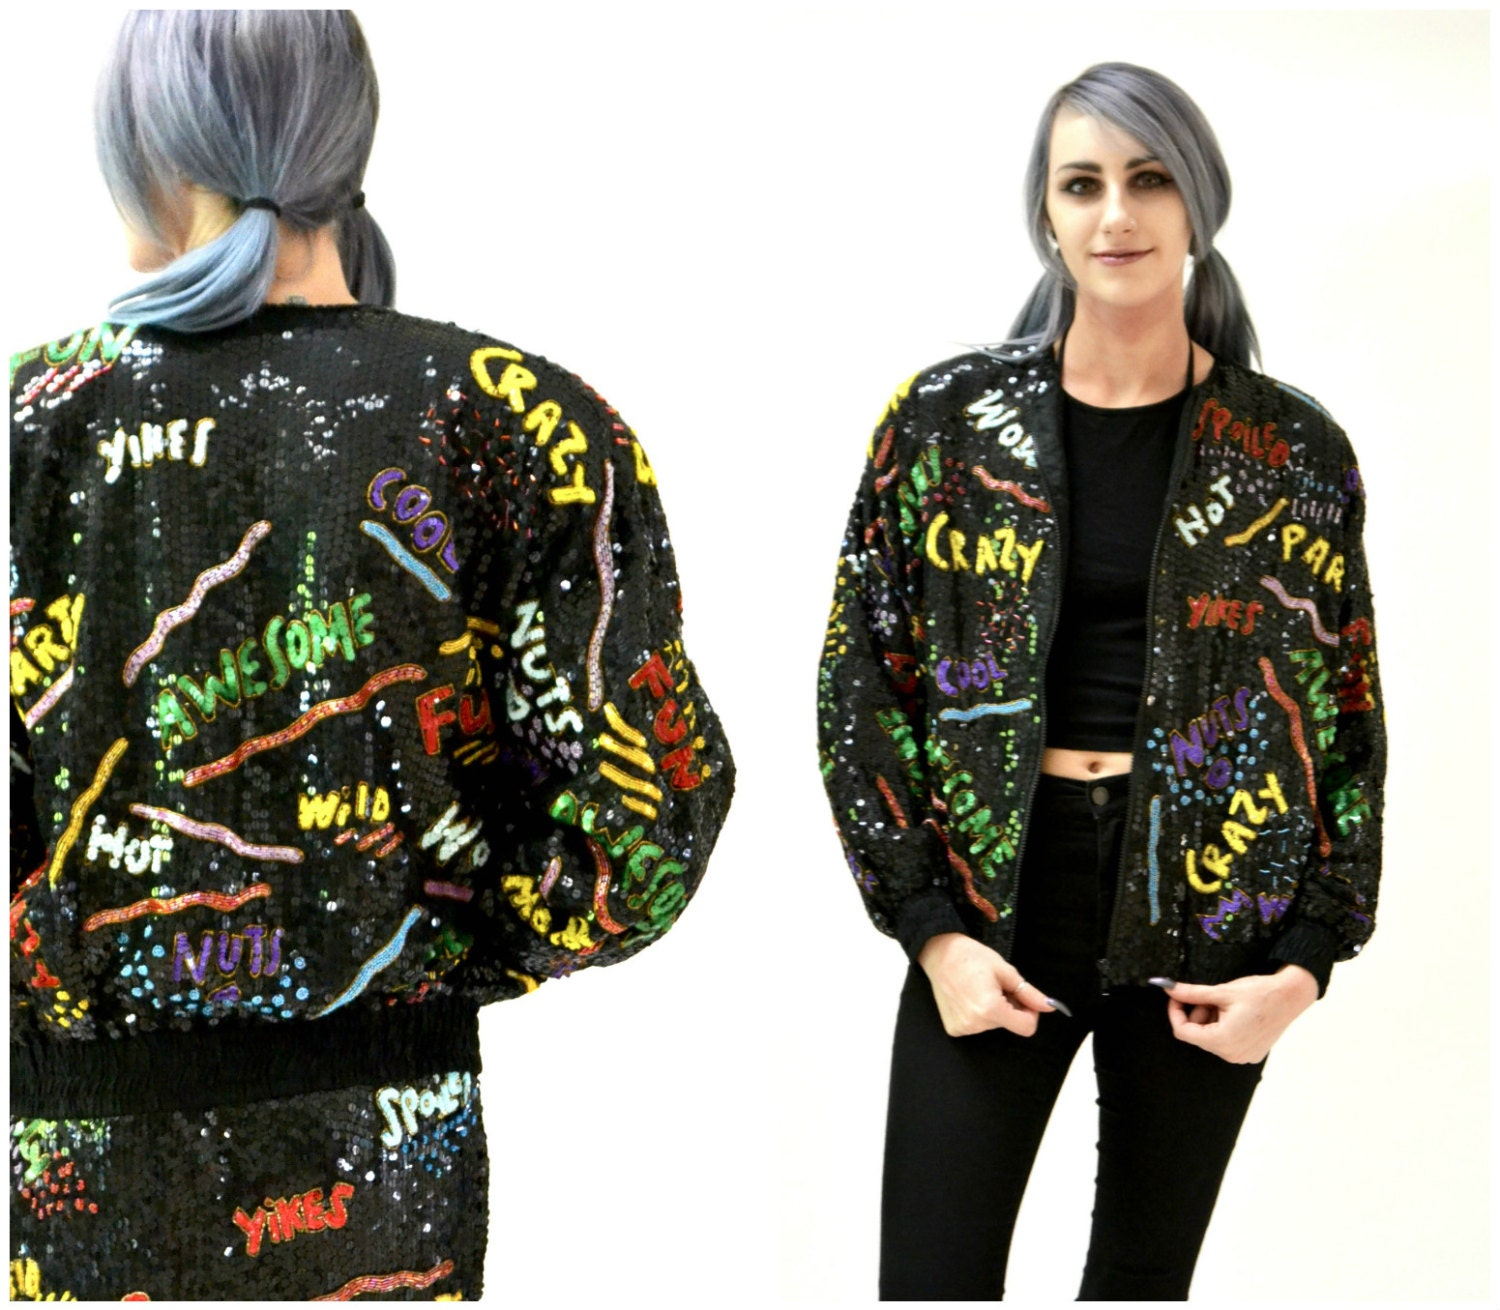 d1dd7262a Vintage Black Sequin Jacket with Words 90s pop art// Vintage Black Sequin  Jacket Bomber Jacket Awesome Party Fun Jacket By Modi Sequin